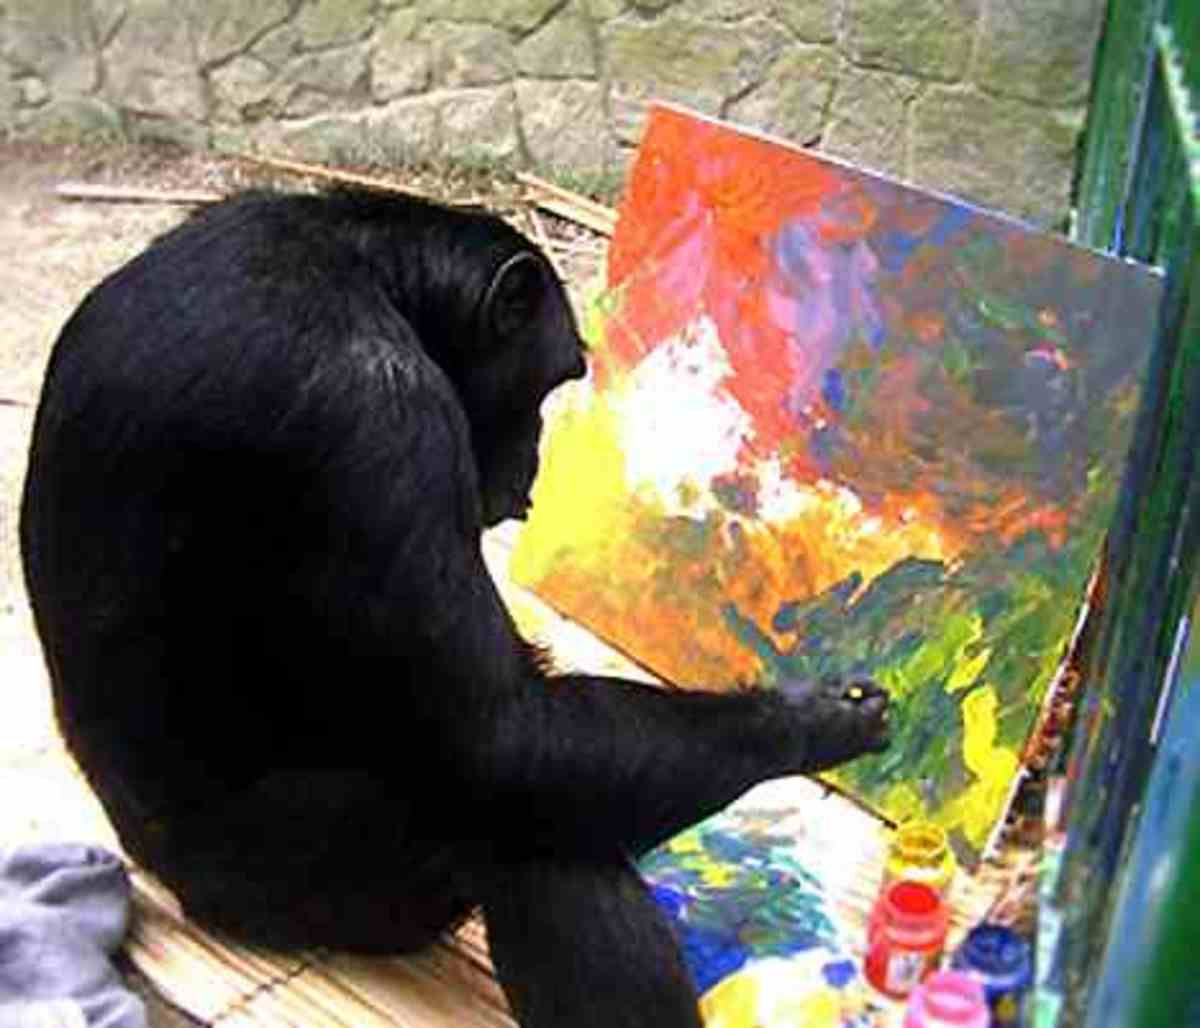 Jimmy the Painting Chimpanzee  Sadly Jimmy's story is a sad tale. To read the full story click on the link .